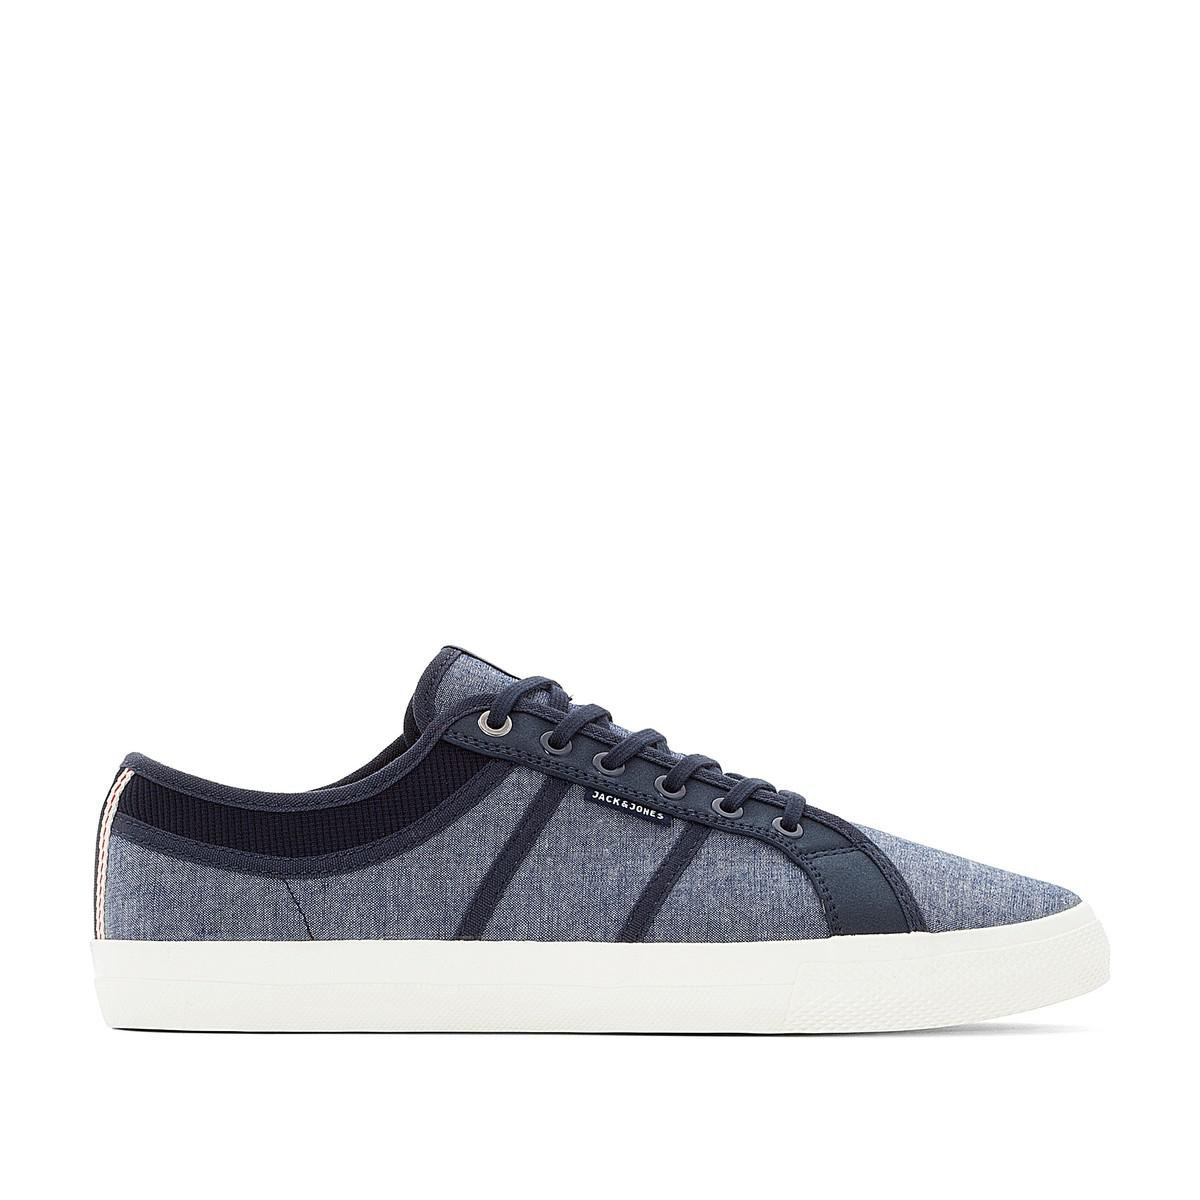 outlet cheap quality cheap 100% authentic JACK & JONES JFW Ross Canvas Lace-Up Trainers buy cheap deals discount prices ebay sale online ATiNEunf1